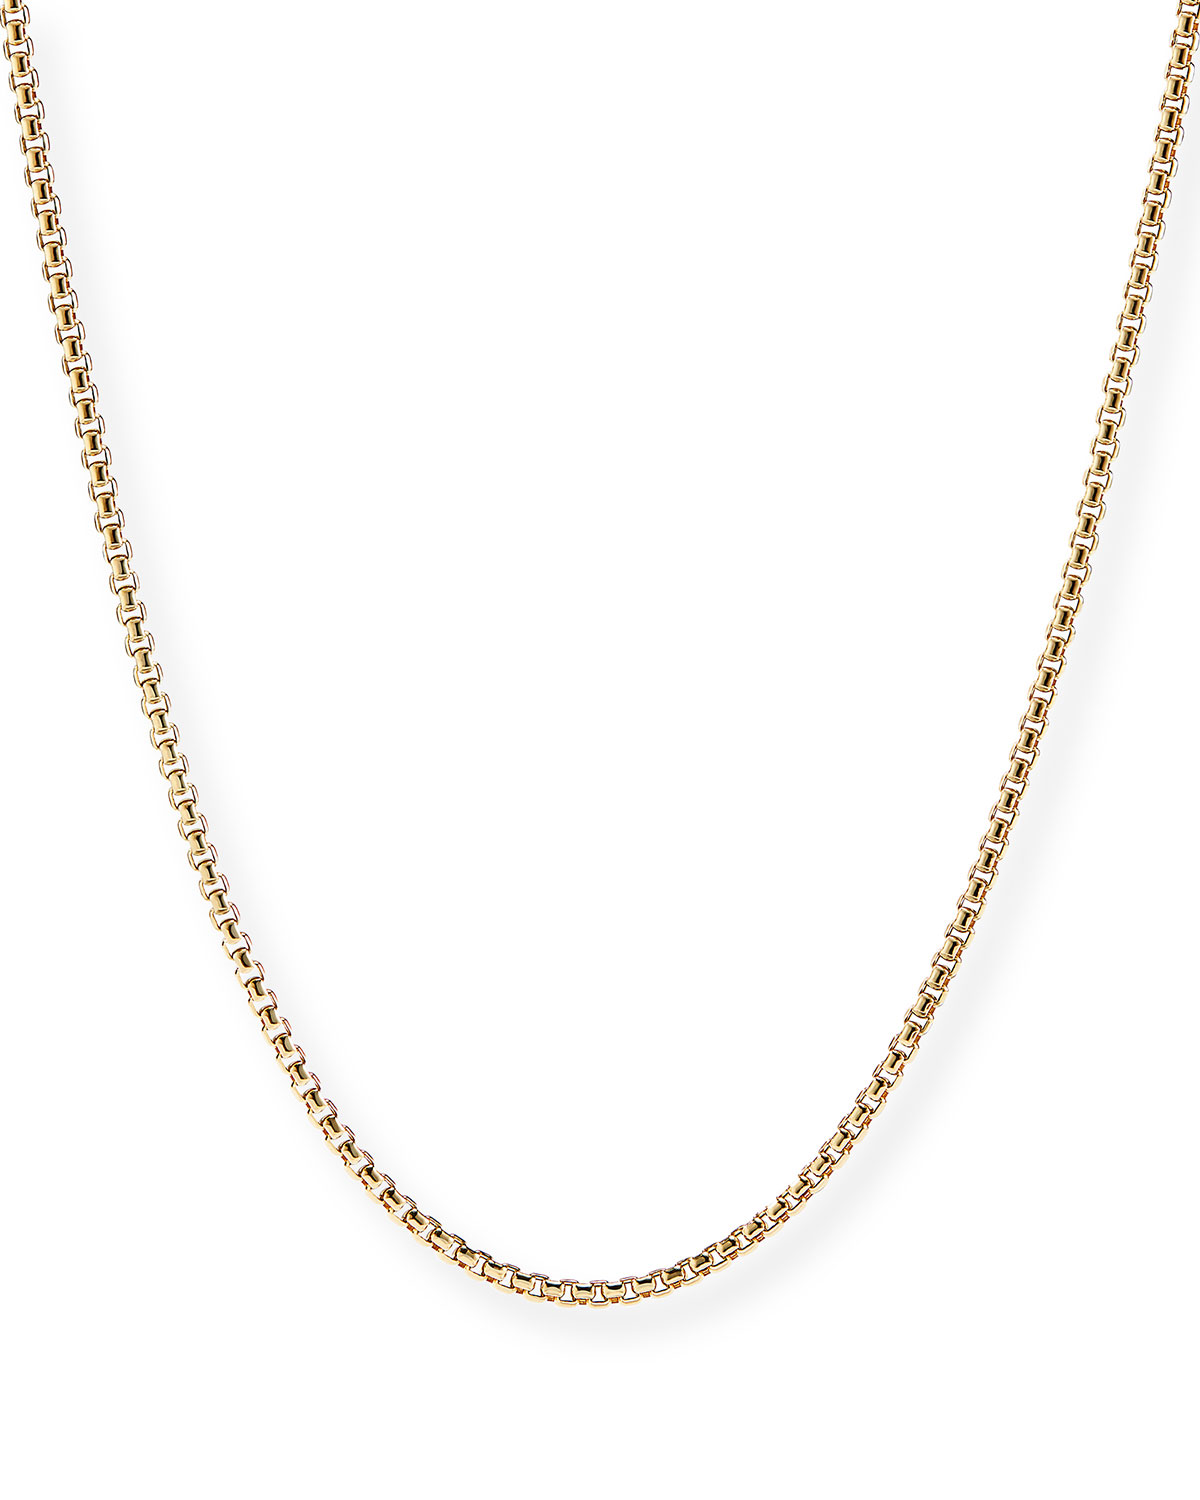 Men's 18k Yellow Gold Box Chain Necklace